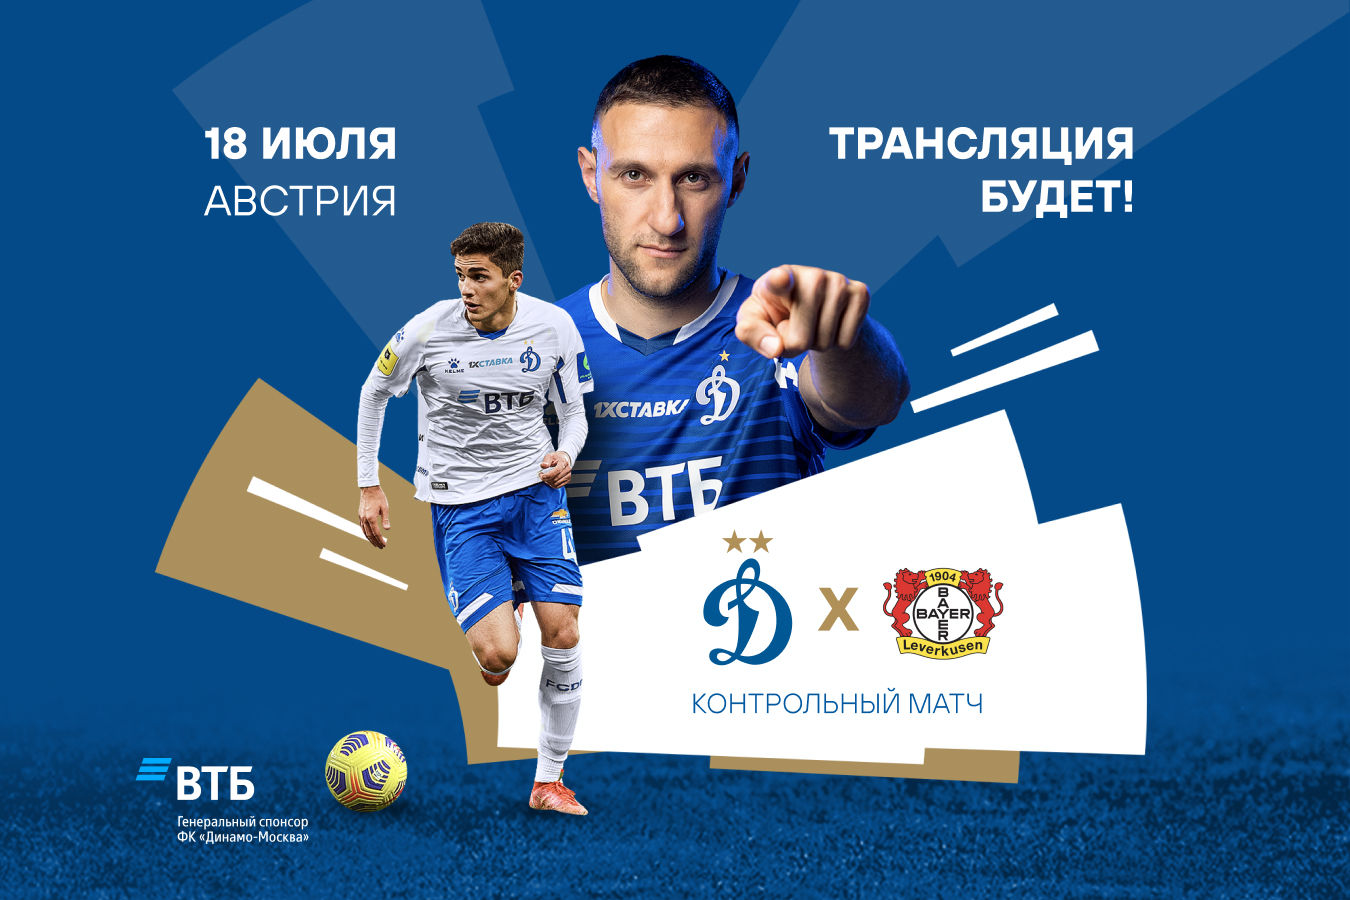 Dynamo will face Bayer 04 at second VTB training camp in Austria